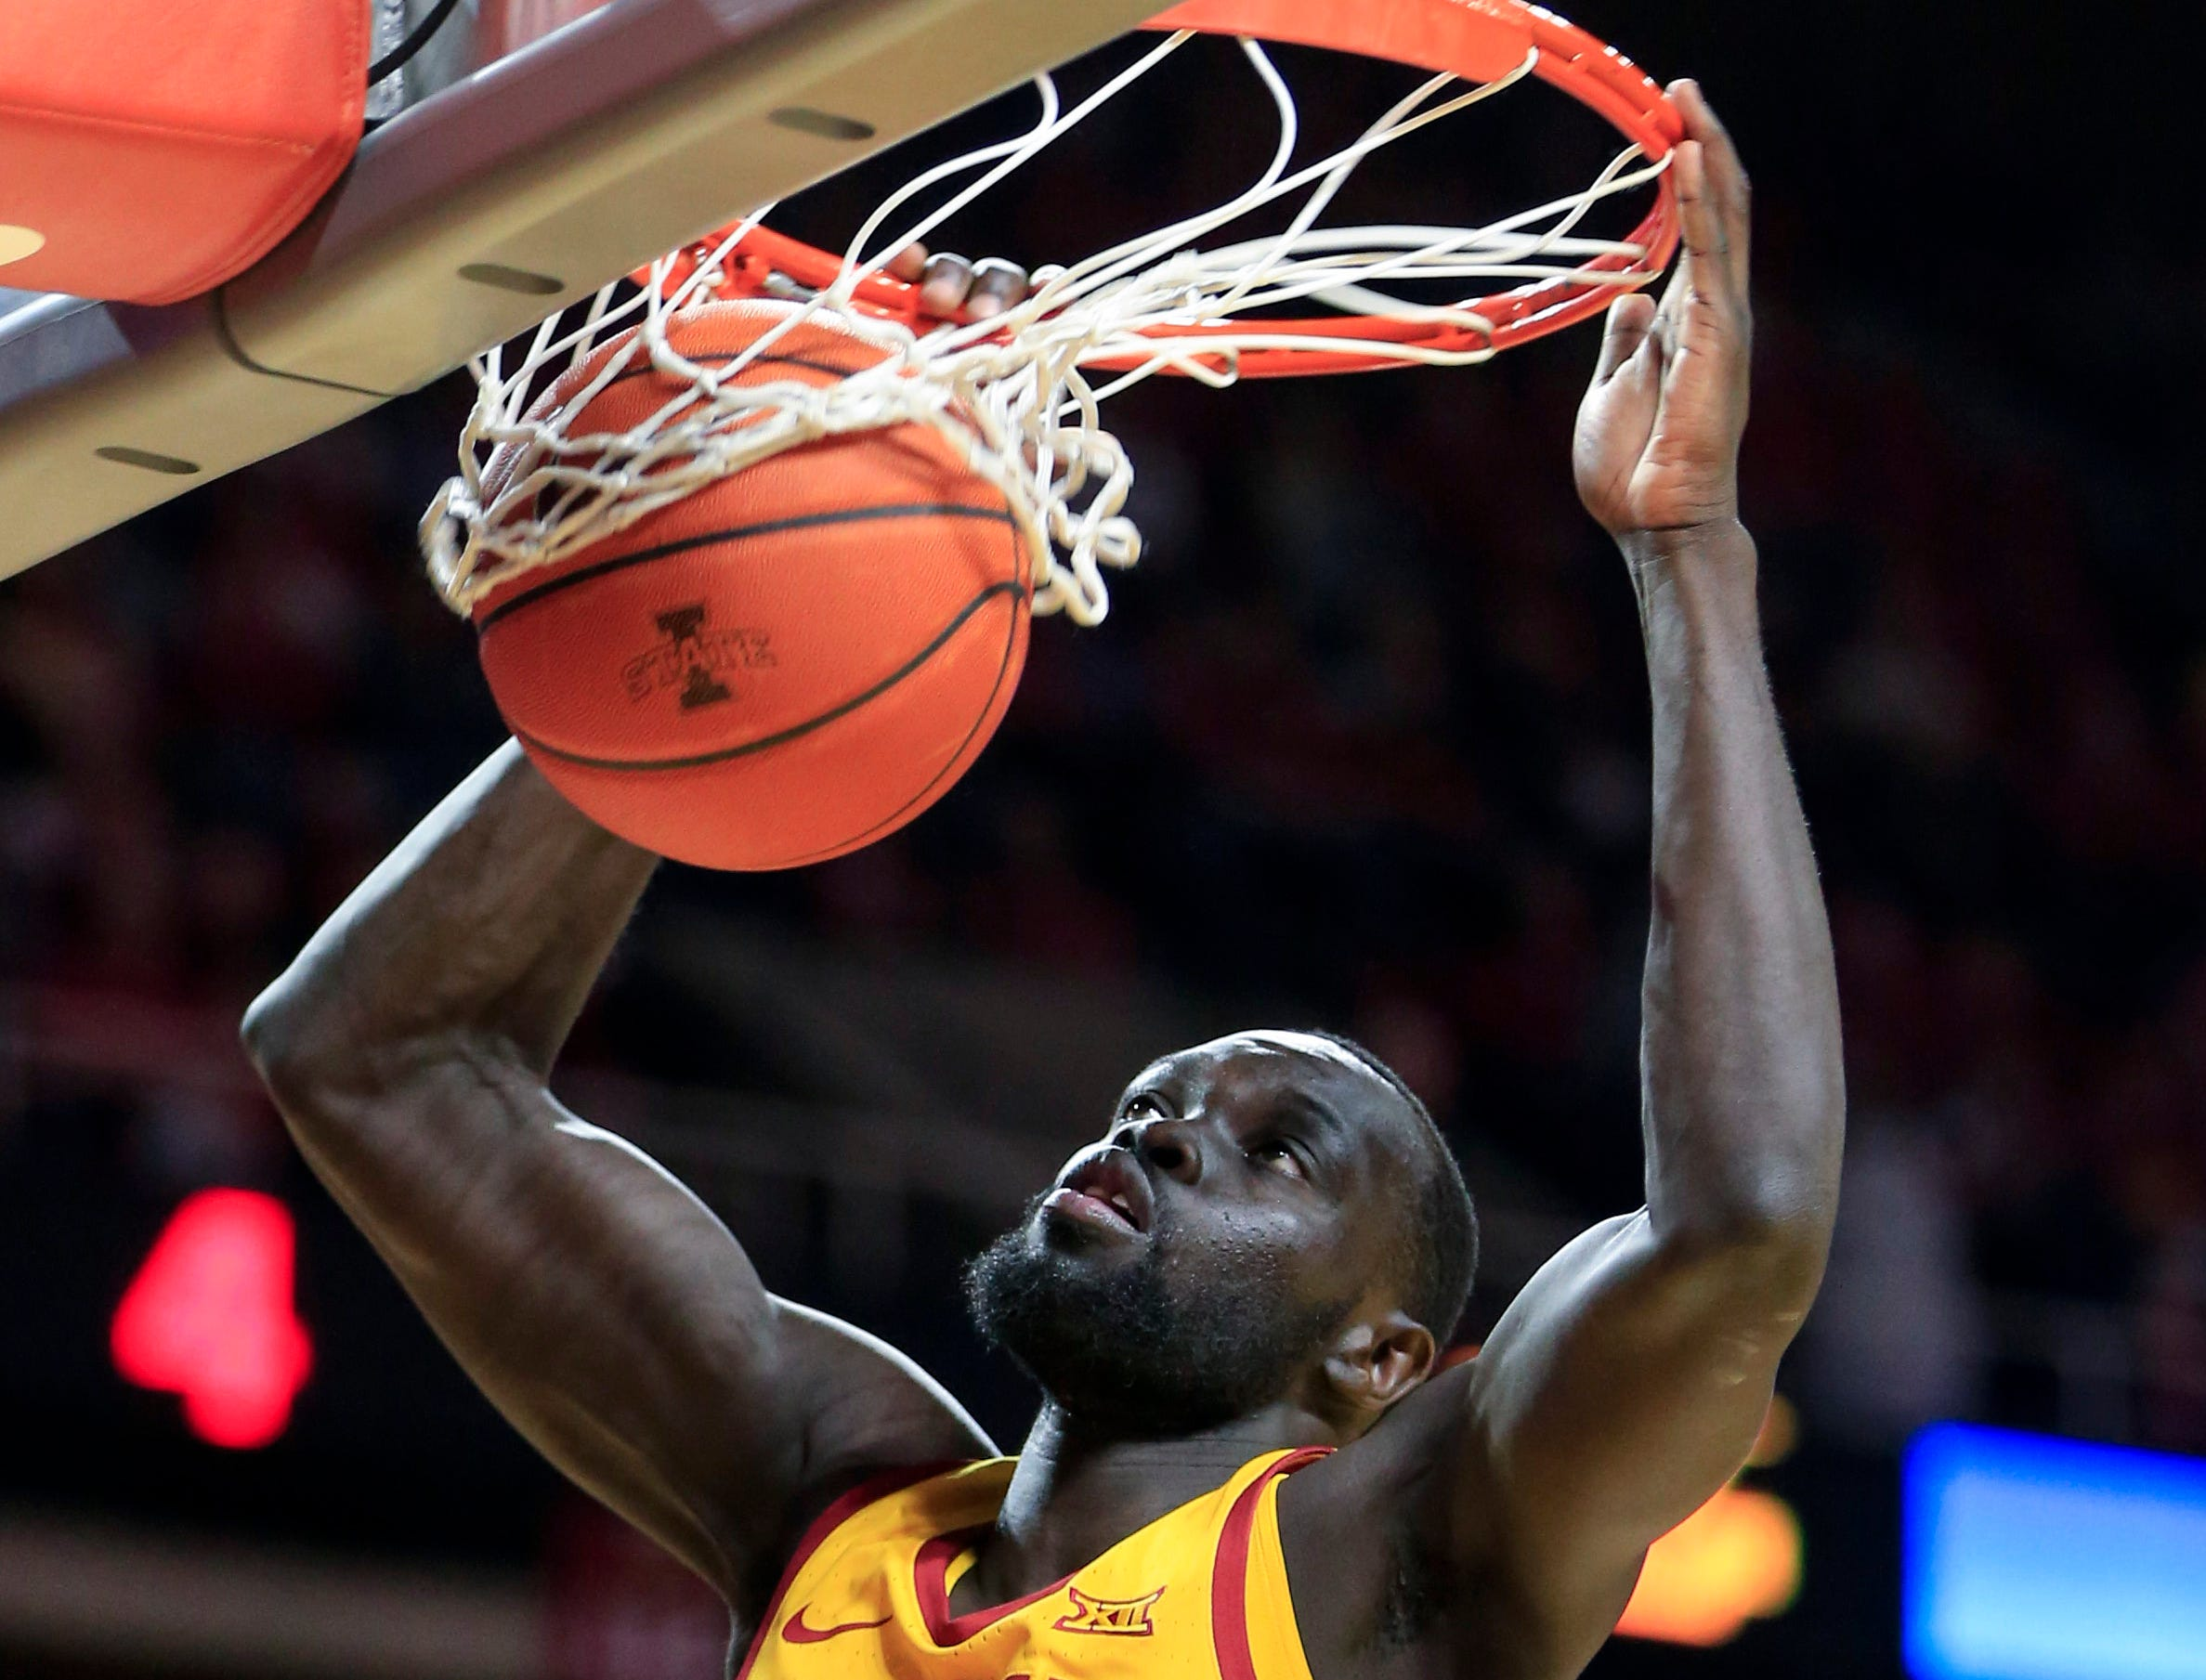 Iowa State's Marial Shayok dunks the ball during a game against West Virginia at Hilton Coliseum Wednesday, Jan. 30, 2019.